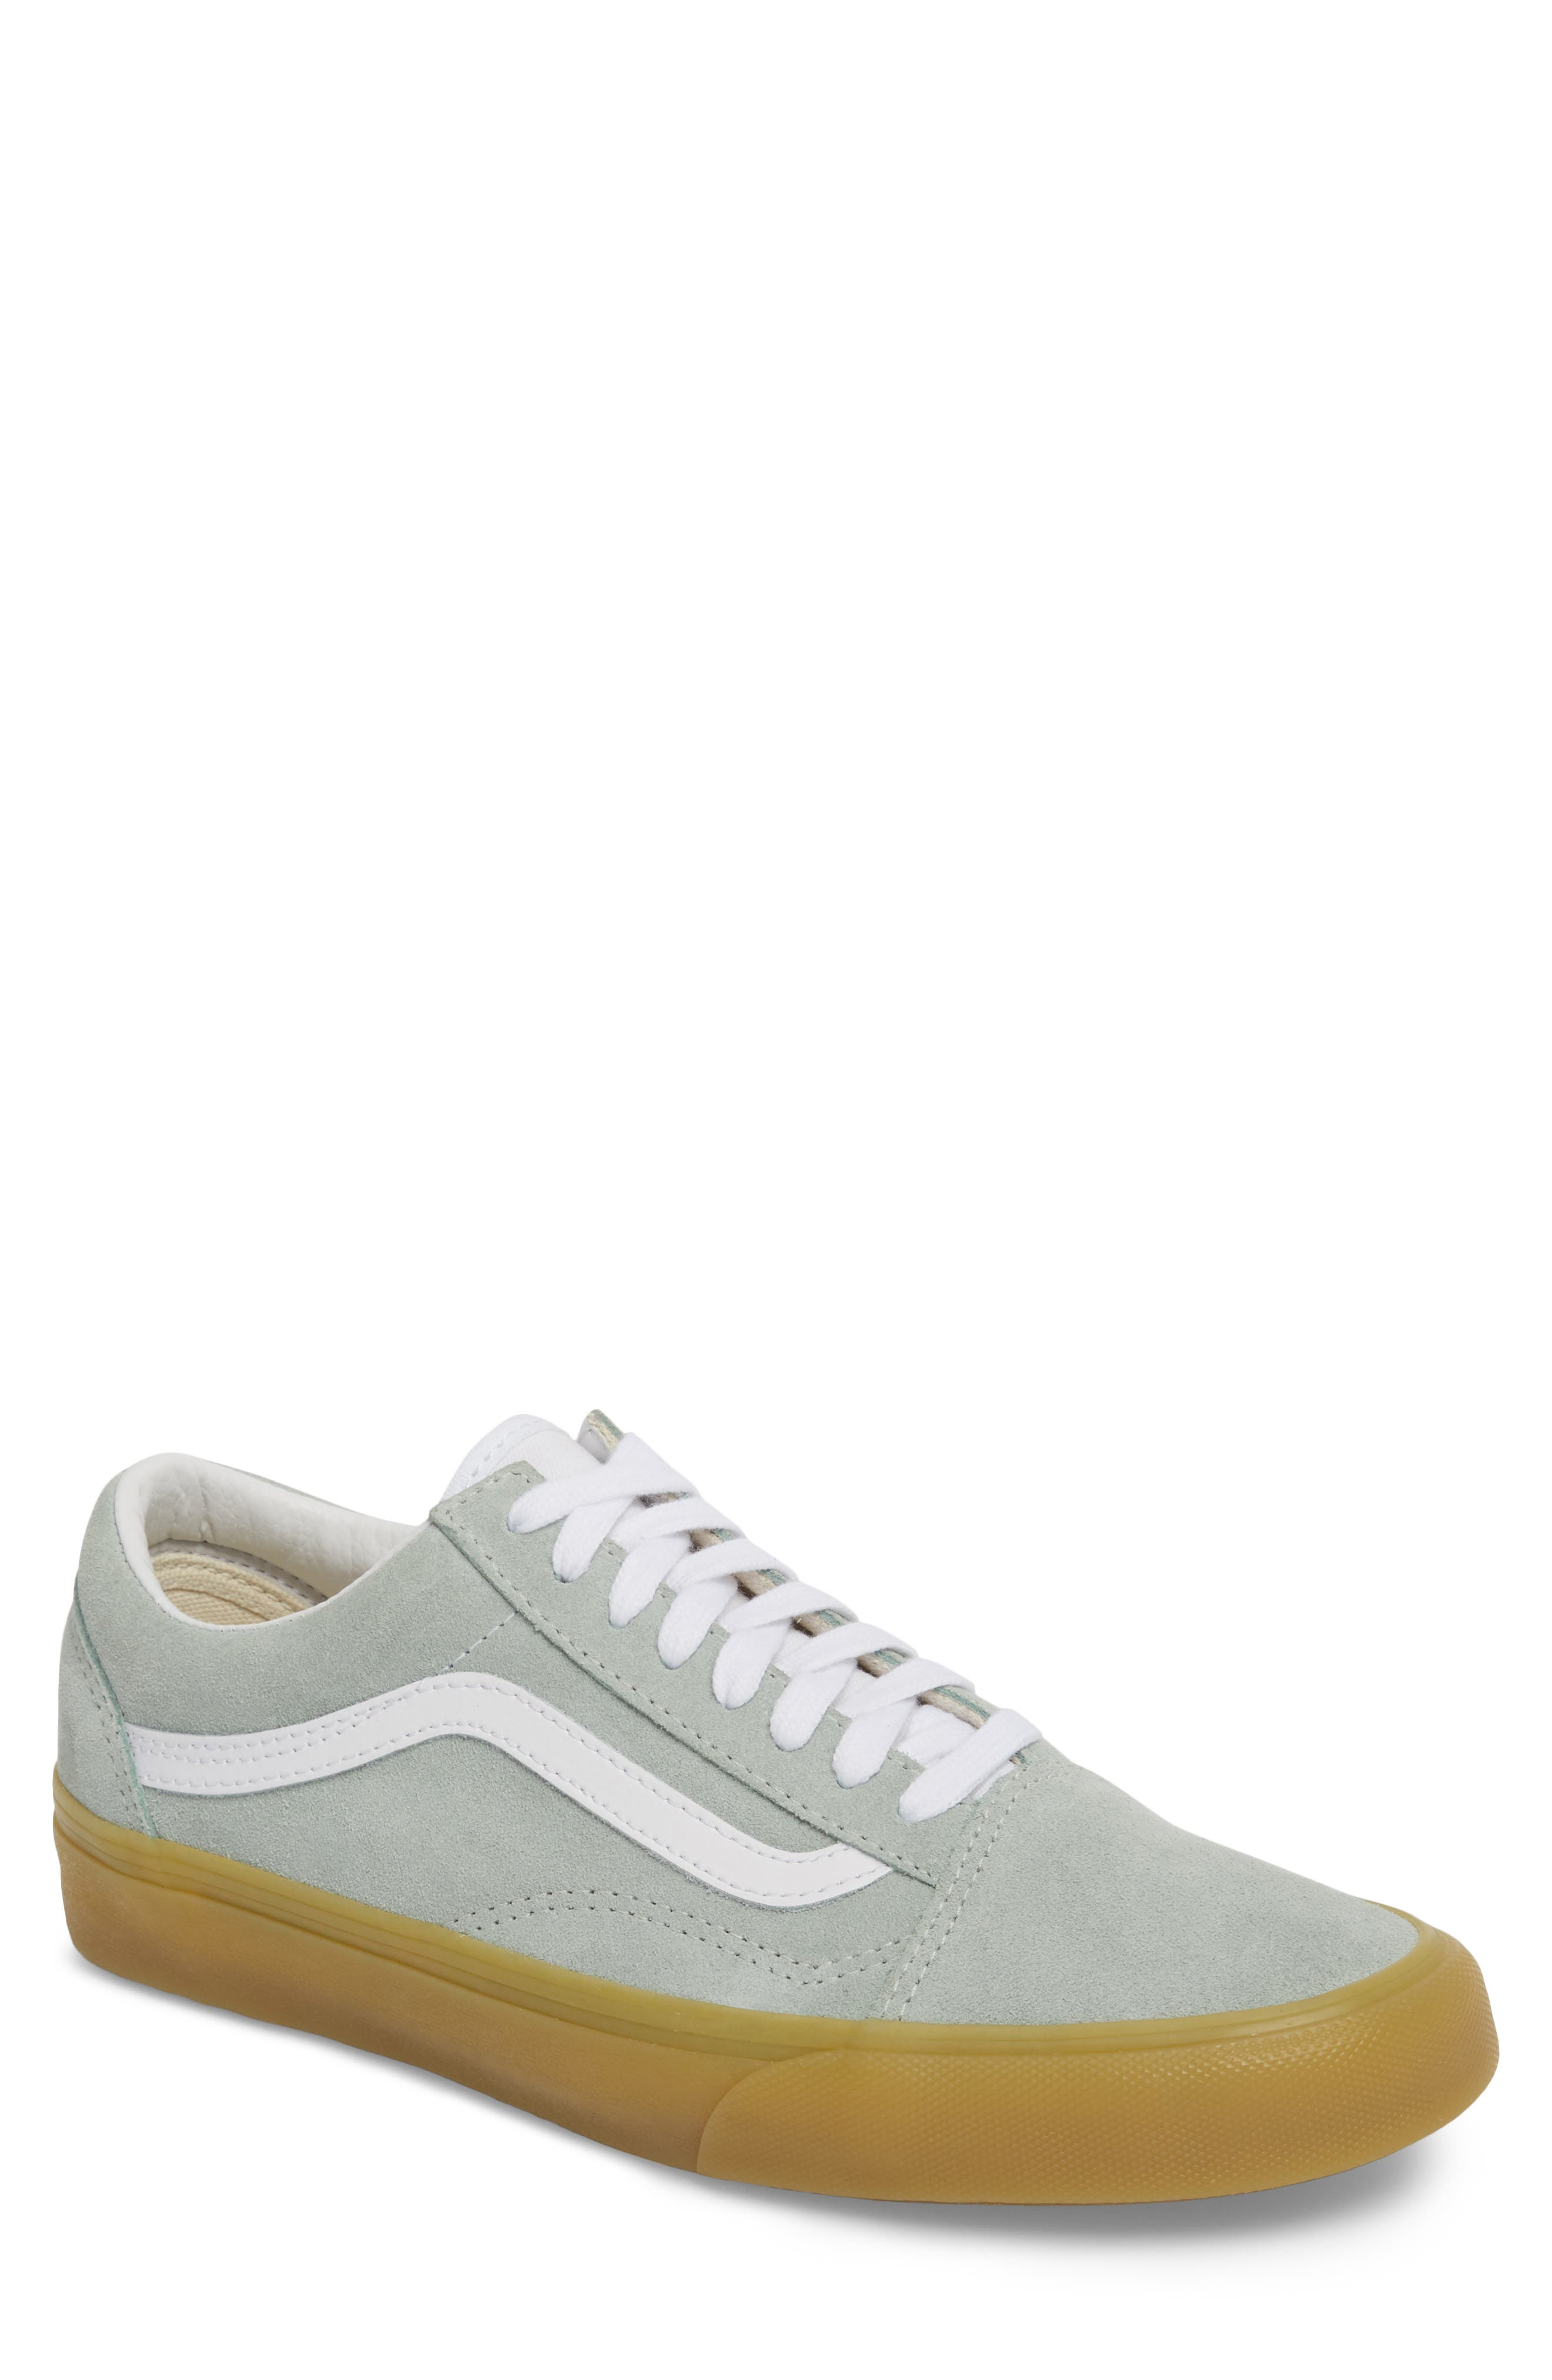 Gum Old Skool Sneaker,                             Main thumbnail 1, color,                             020